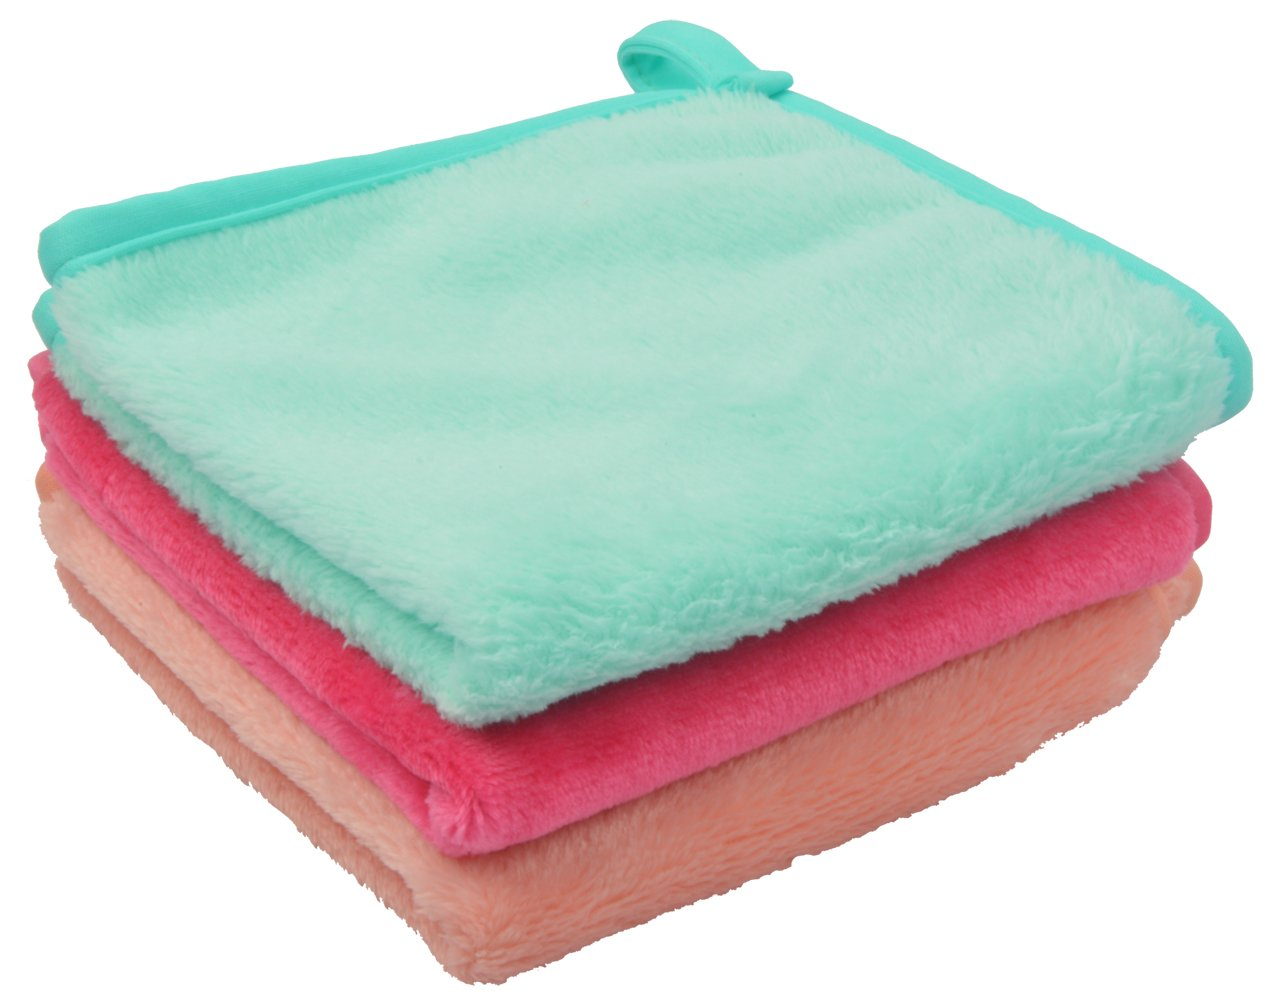 Sinland Flannel Plush Microfiber Makeup Remover Cloths Face Cleansing Towel Soft Washing Tool Light Green+Pink+Orange 12Inch X 12Inch Pack of 3